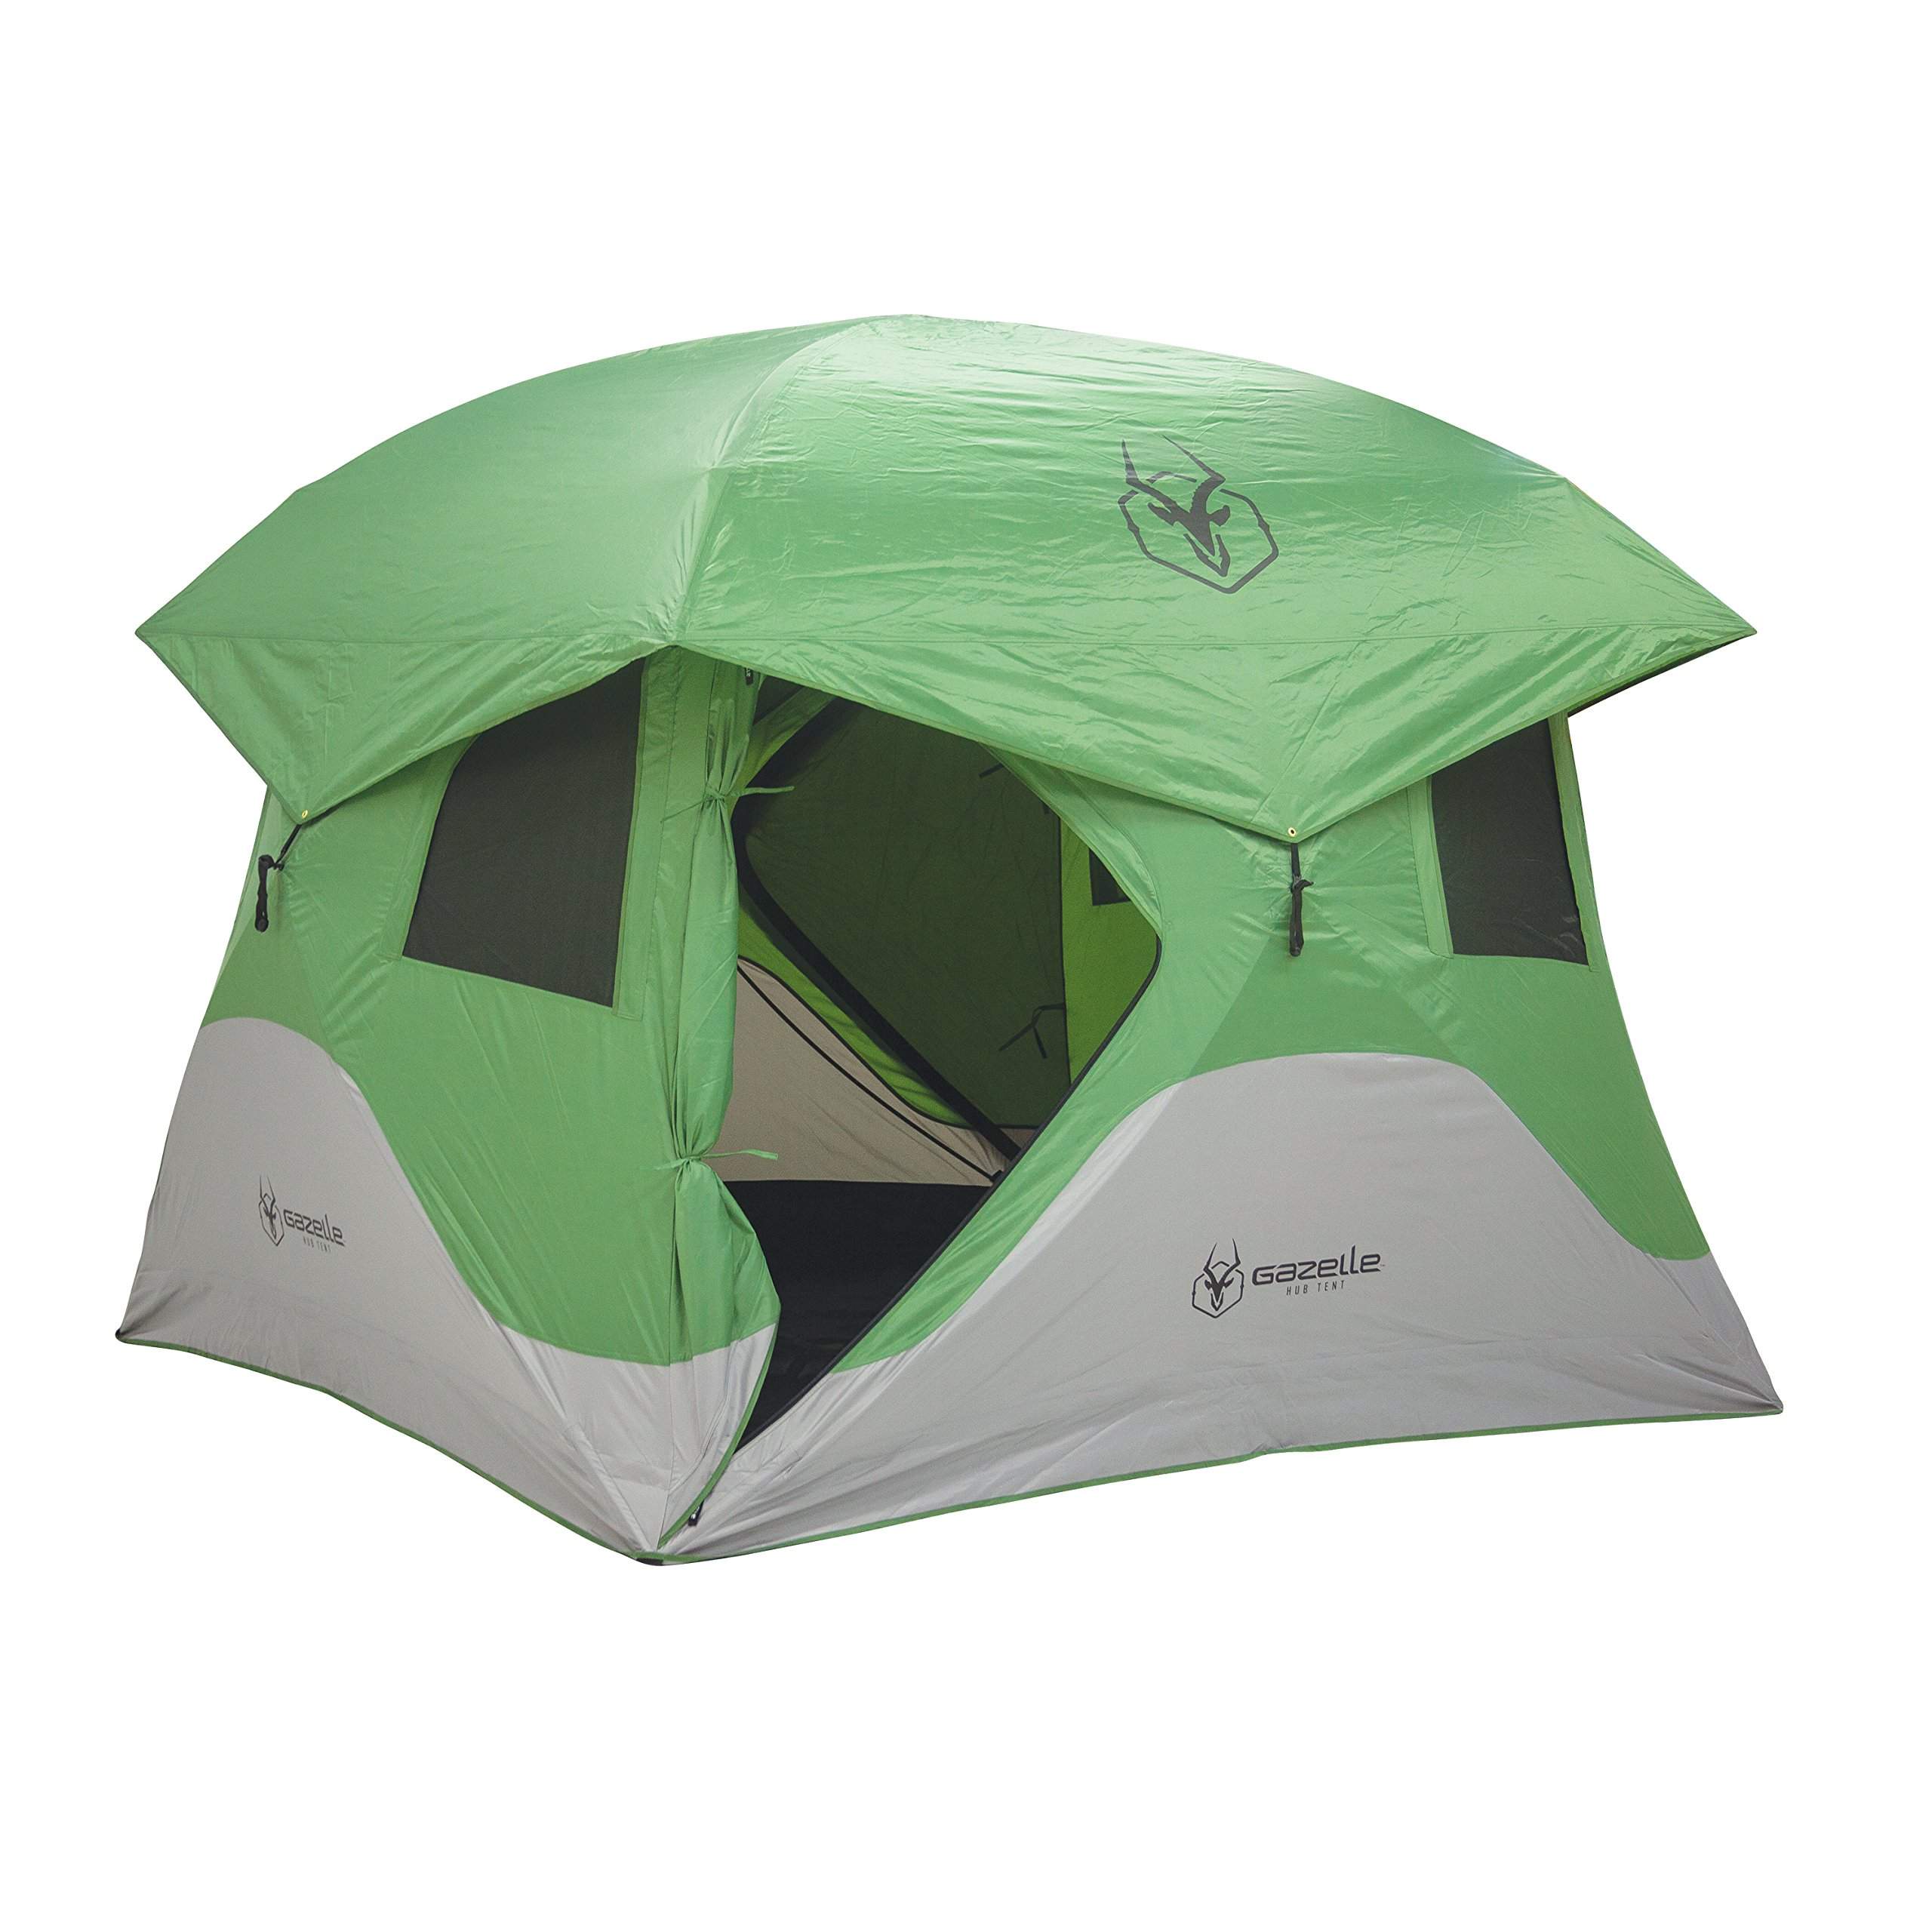 Gazelle 33300 T3 Pop-Up Portable Camping Hub Overlanding Tent, Easy Instant Set up in 90 Seconds, 3 Person by Gazelle Tents